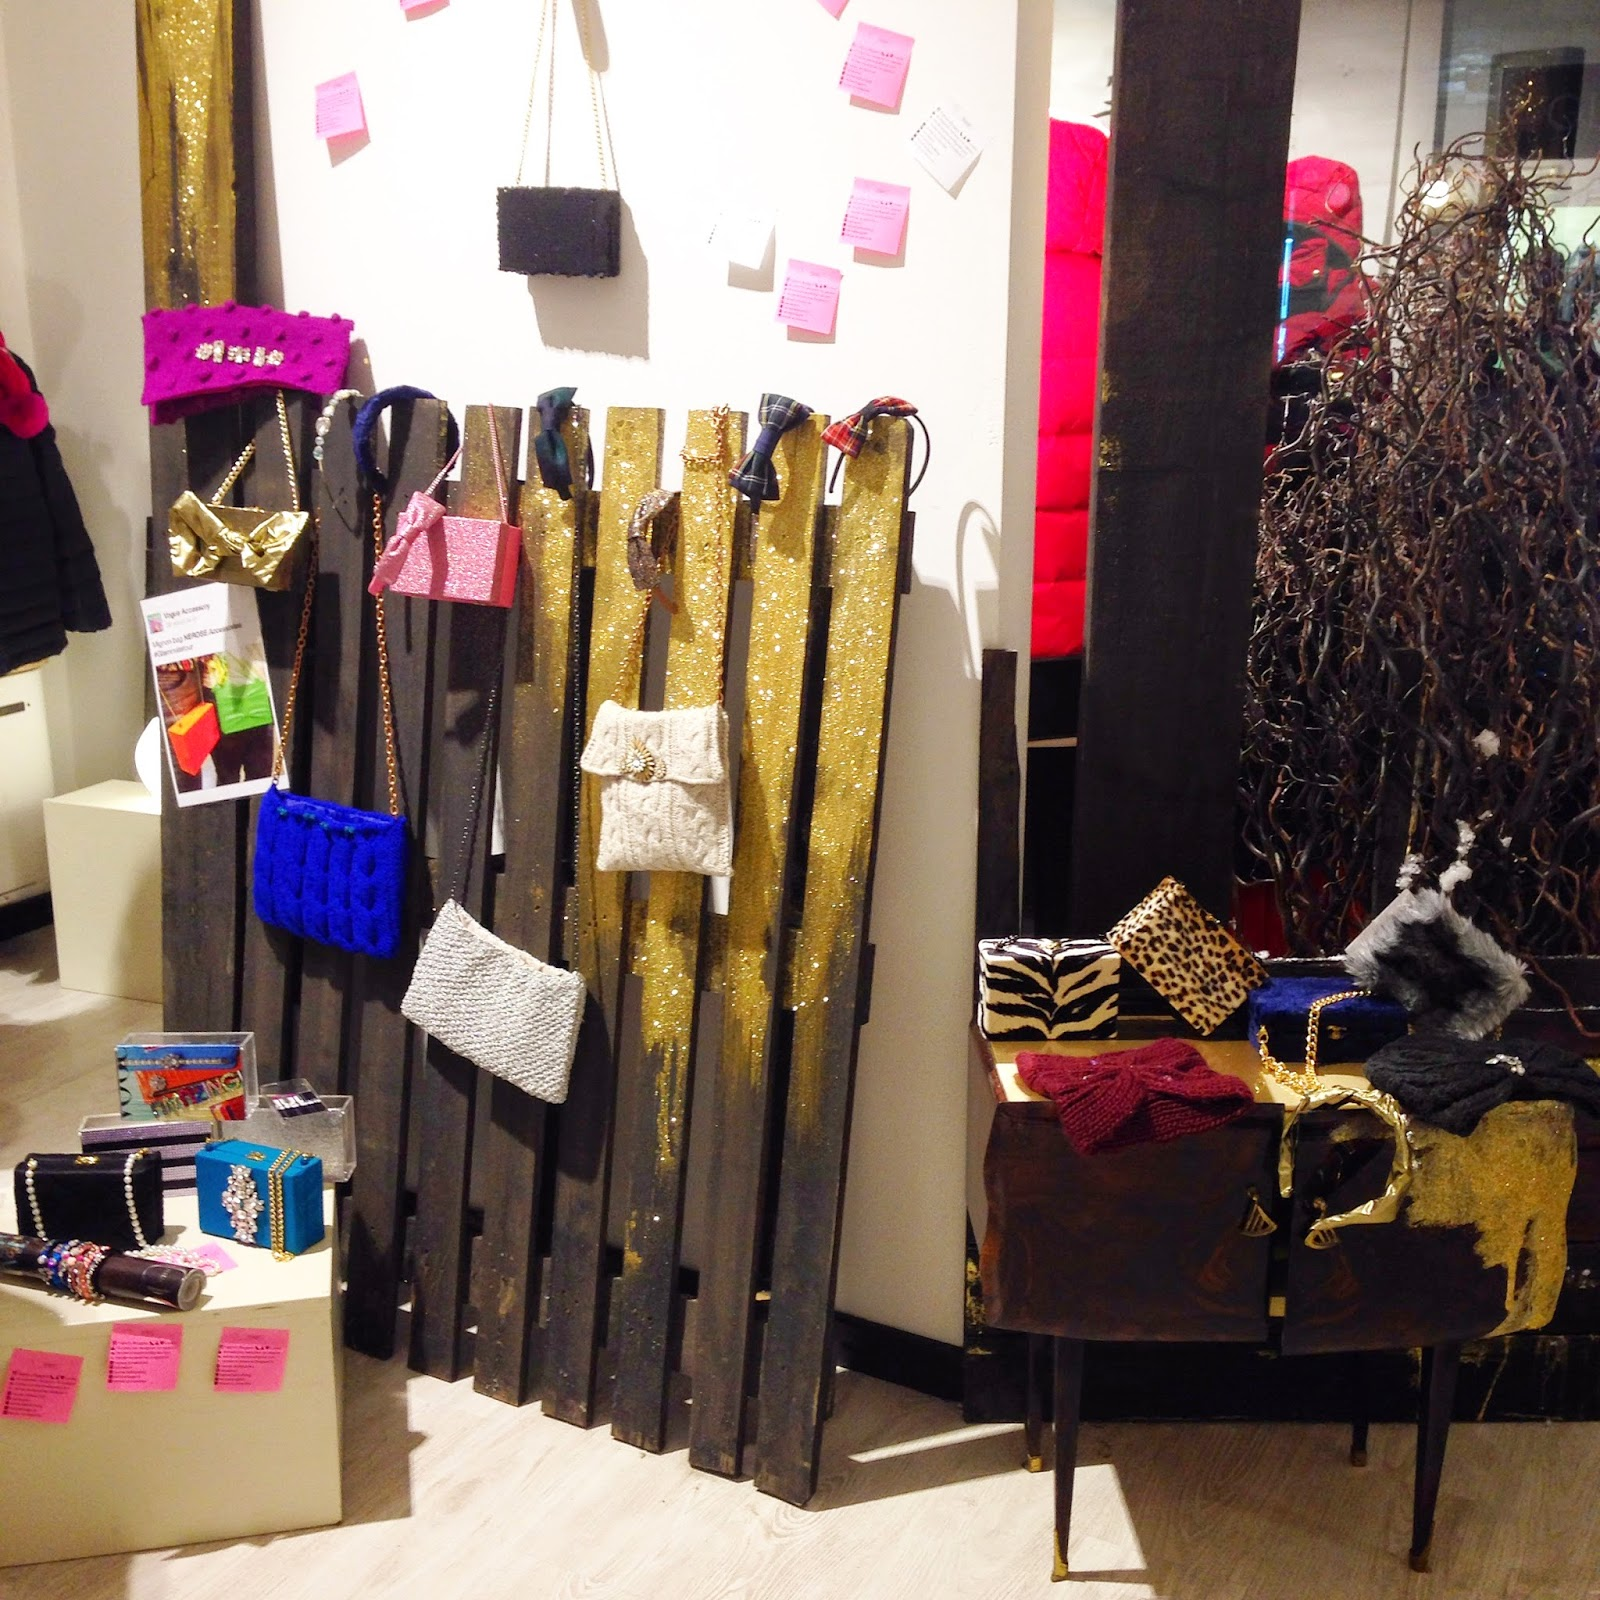 http://nerose-accessories.blogspot.it/2014/12/nerose-in-tour-treviglio.html